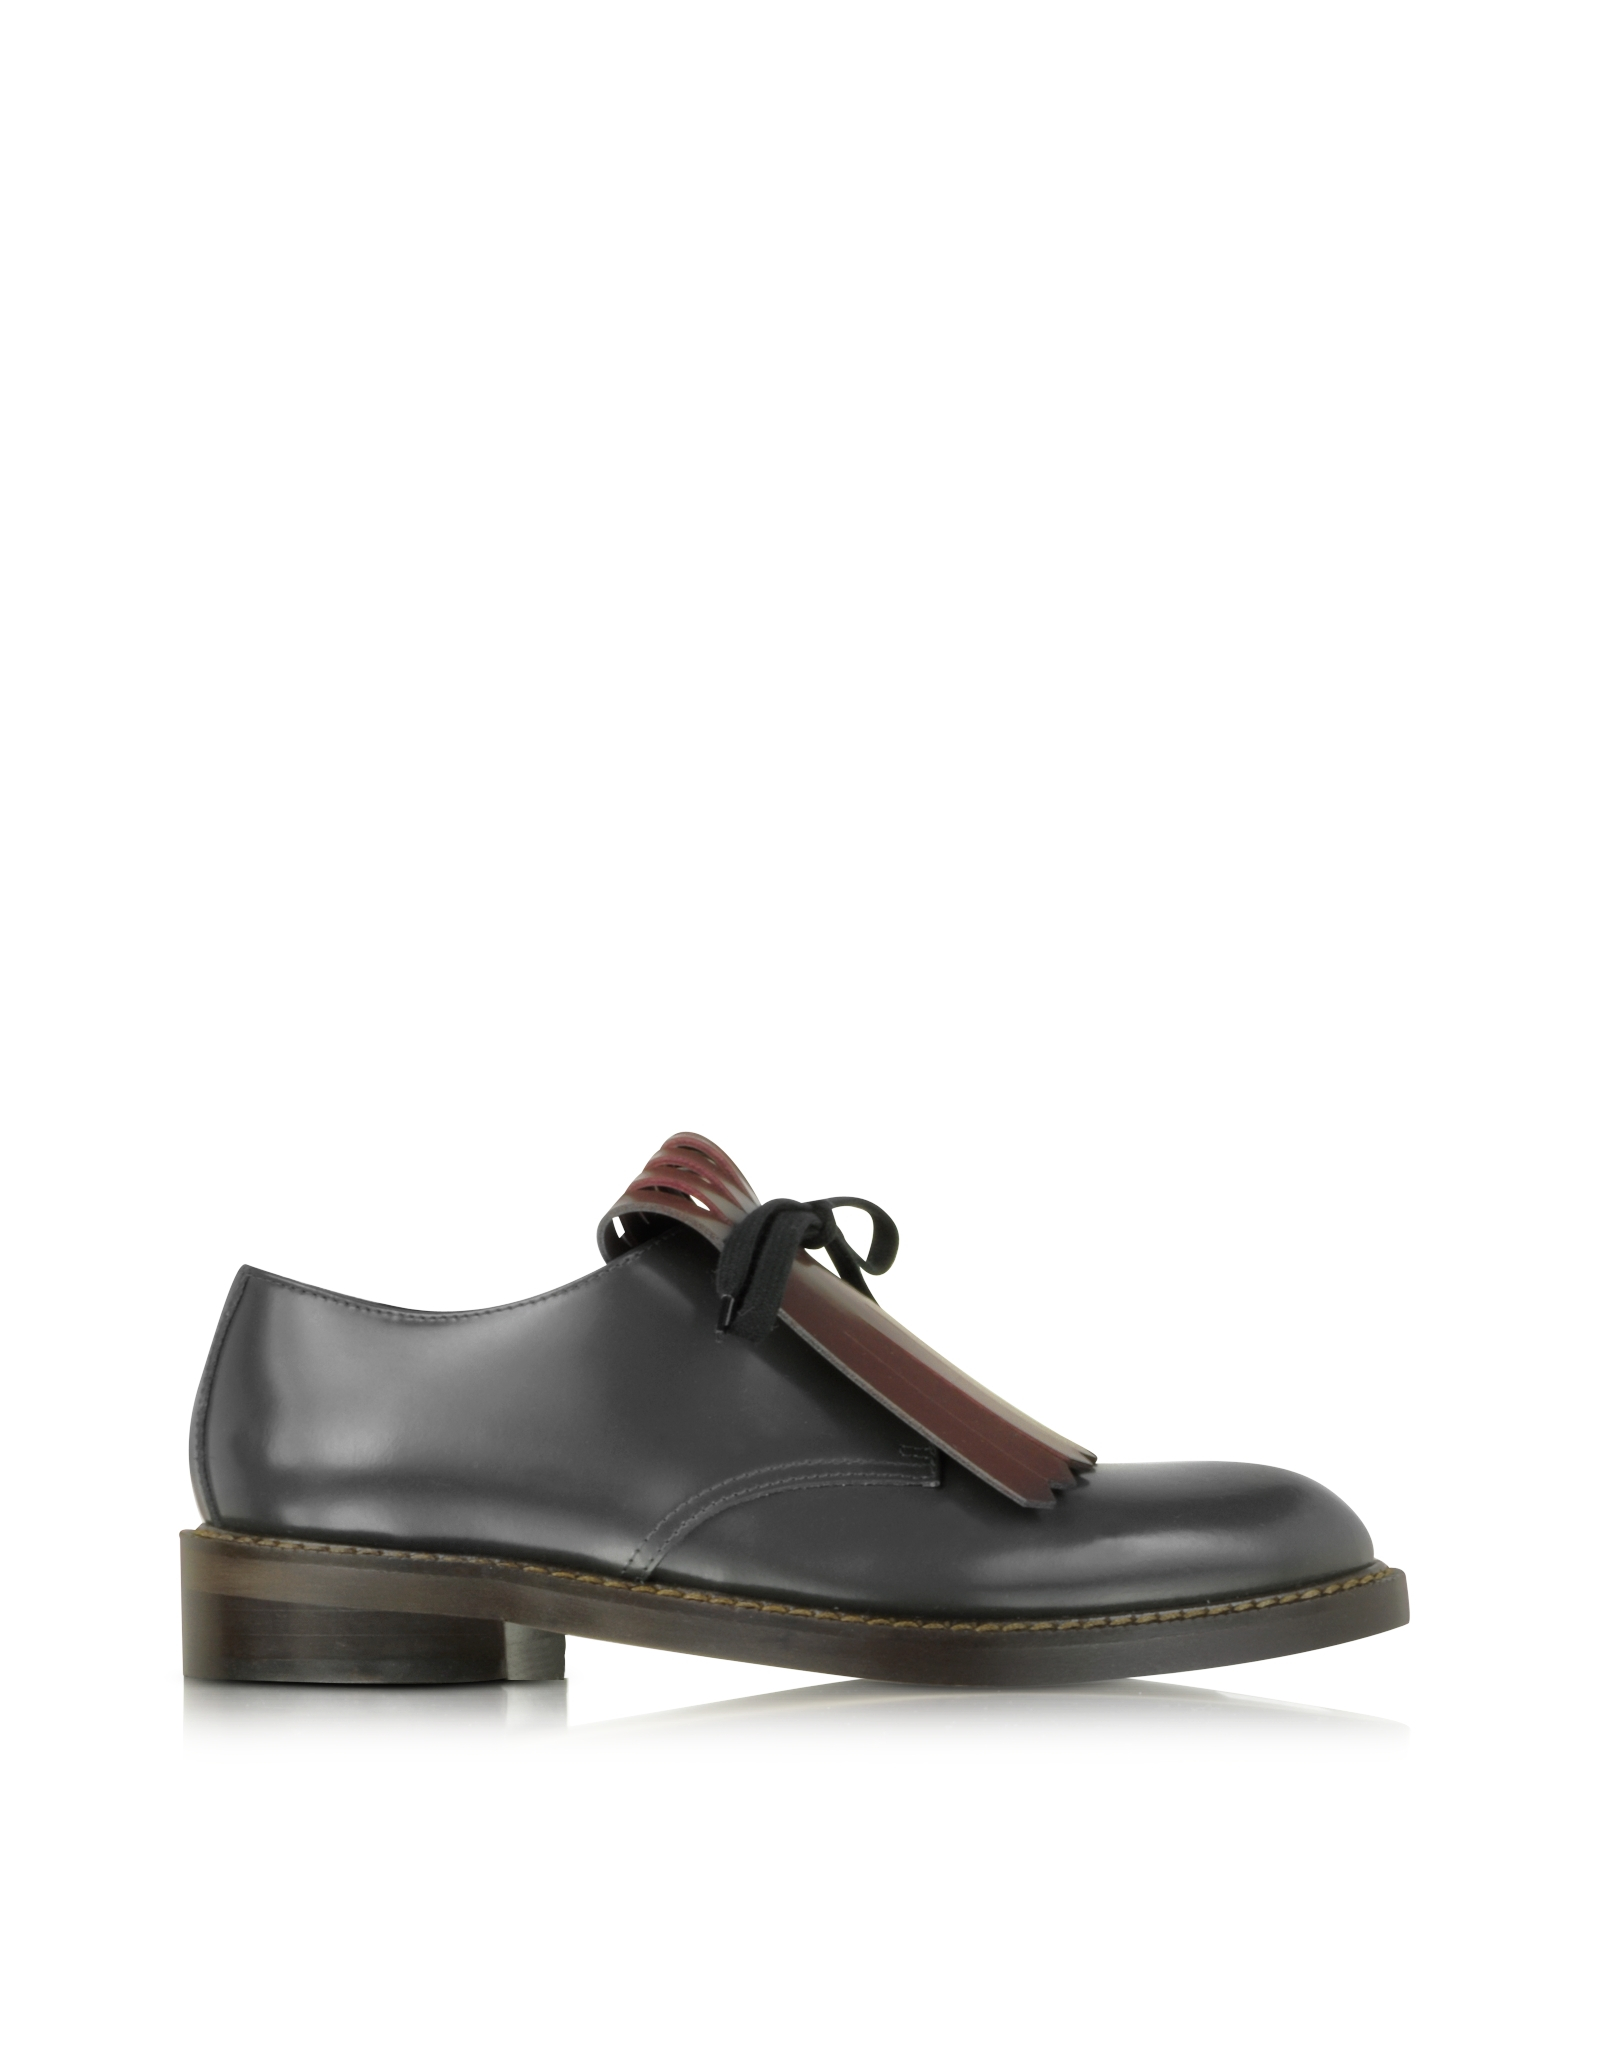 marni lace up leather shoe w contrasting colored fringes